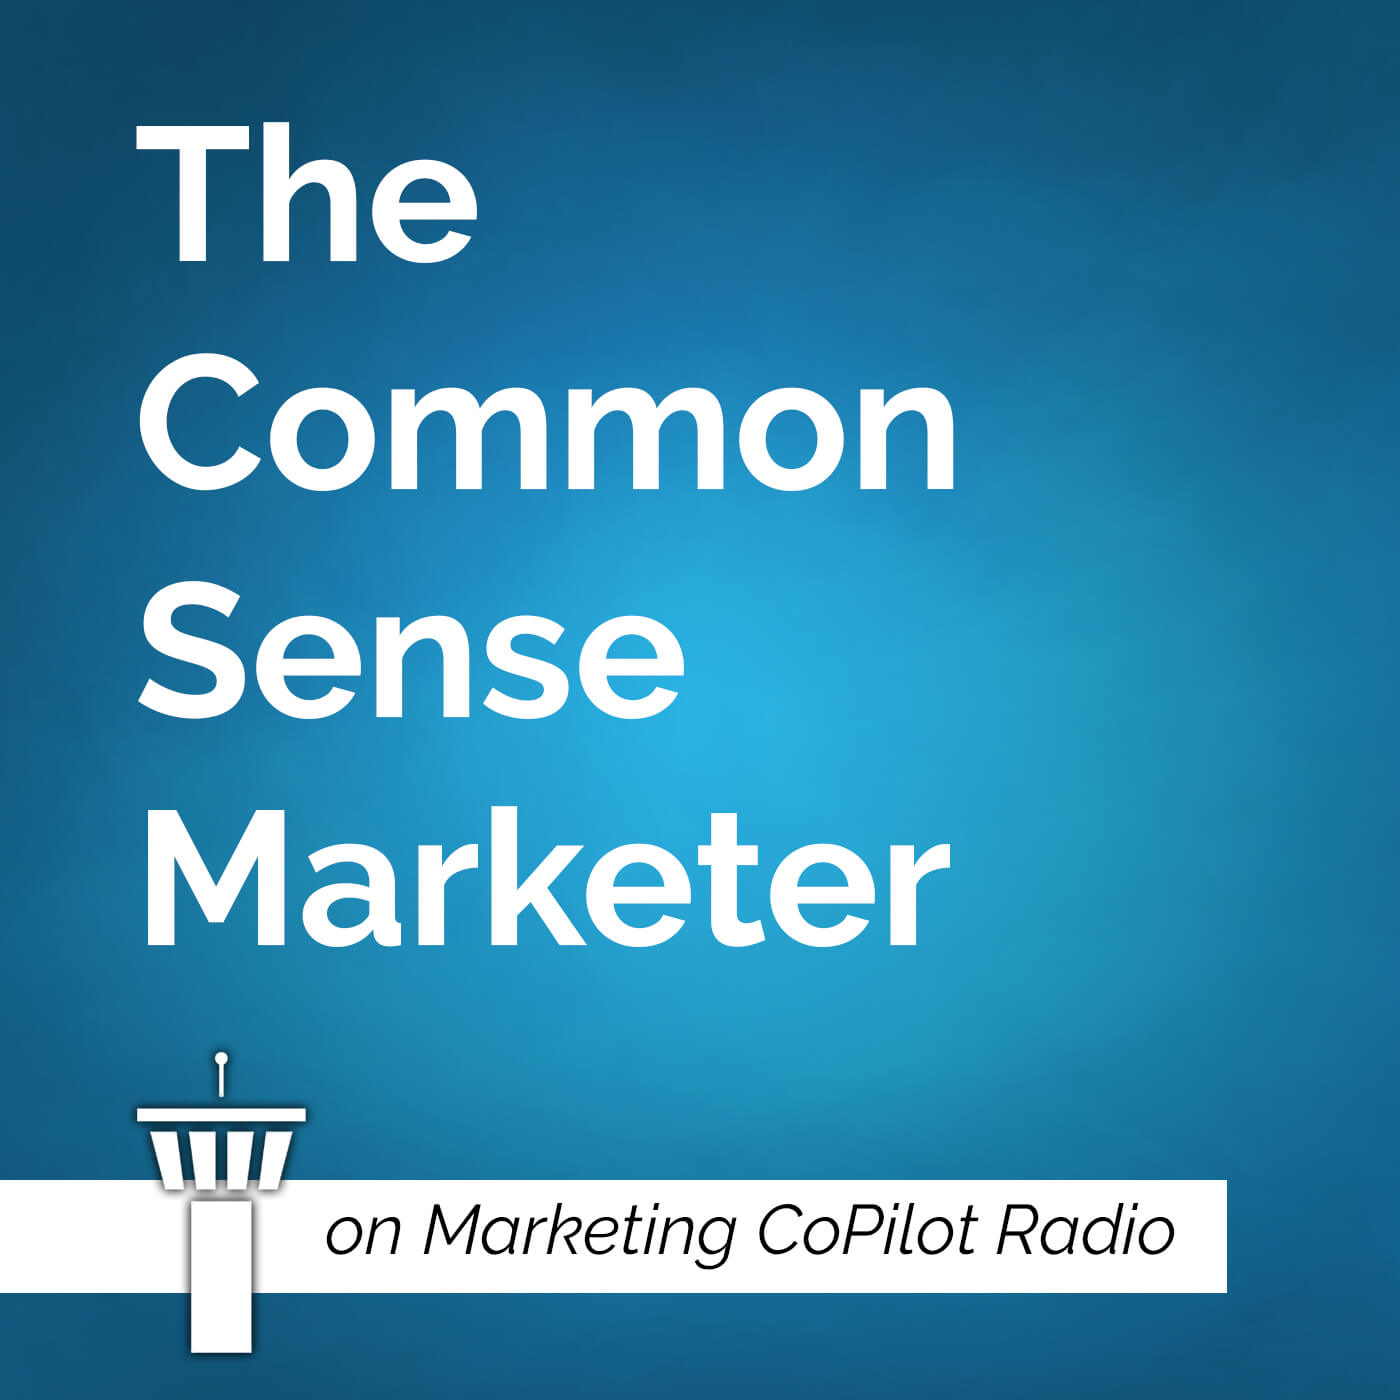 The Common Sense Marketer